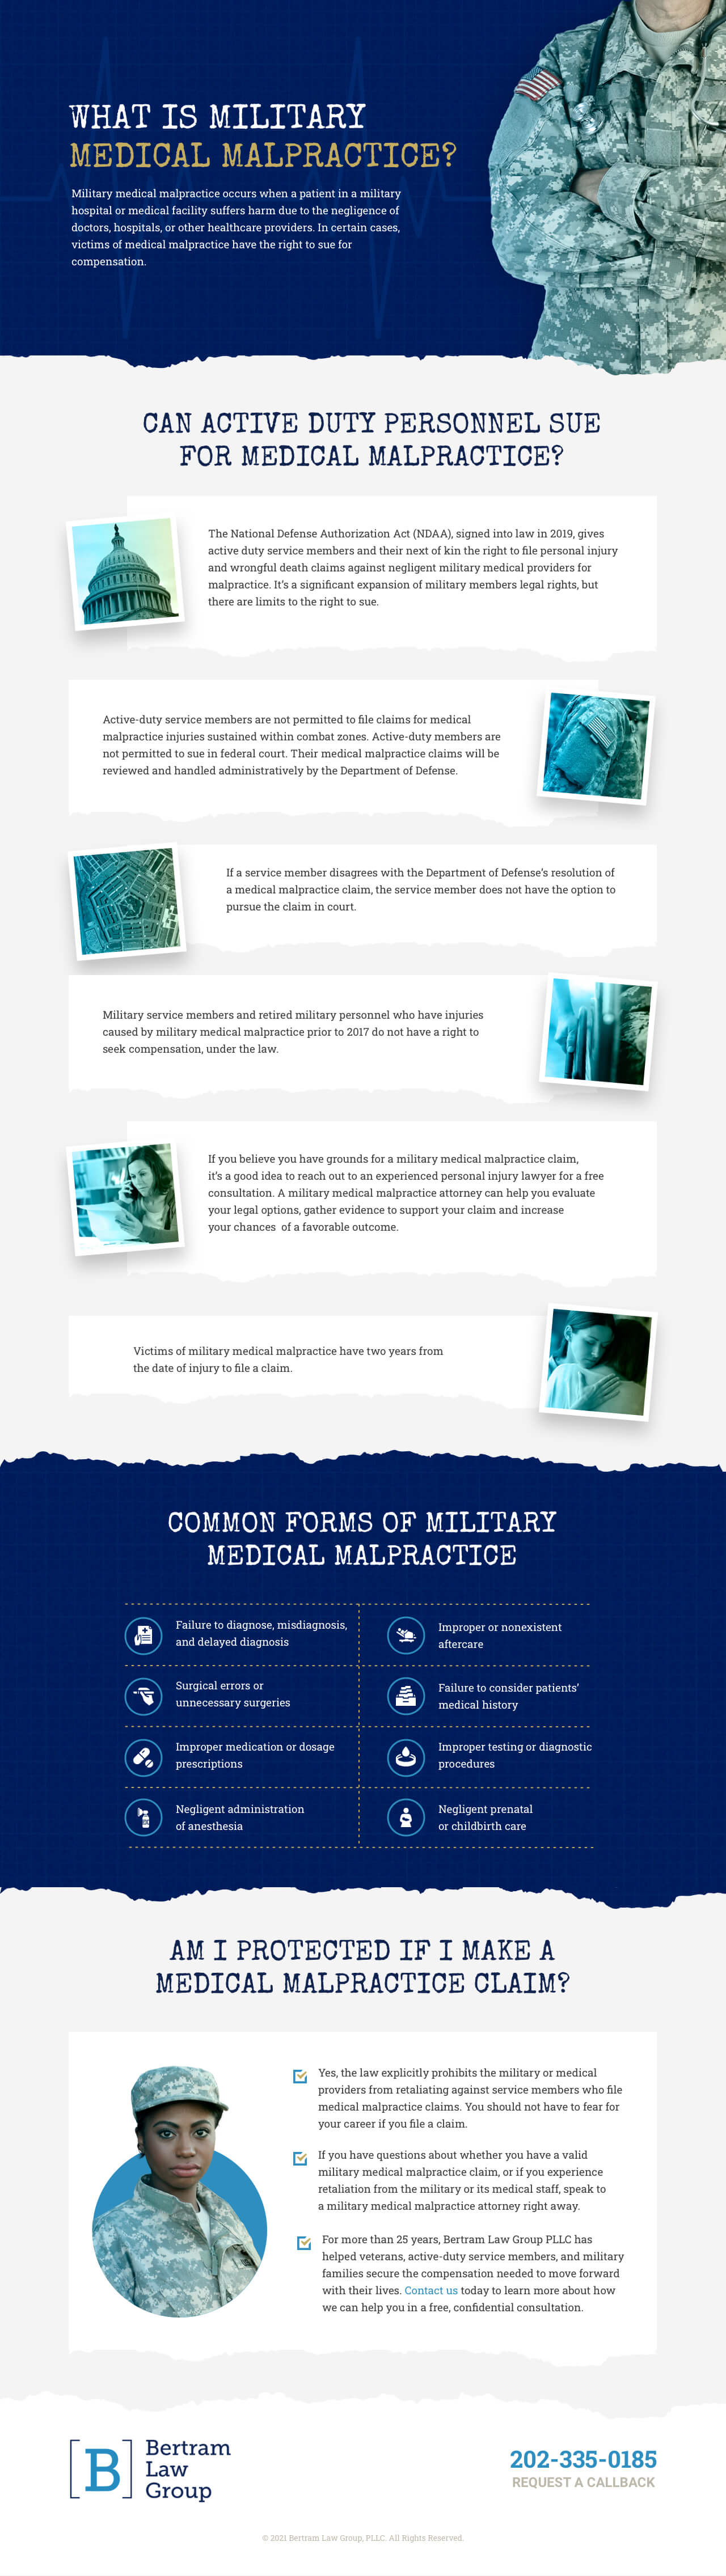 Military Medical Malpractice Infographic - Bertram Law Group